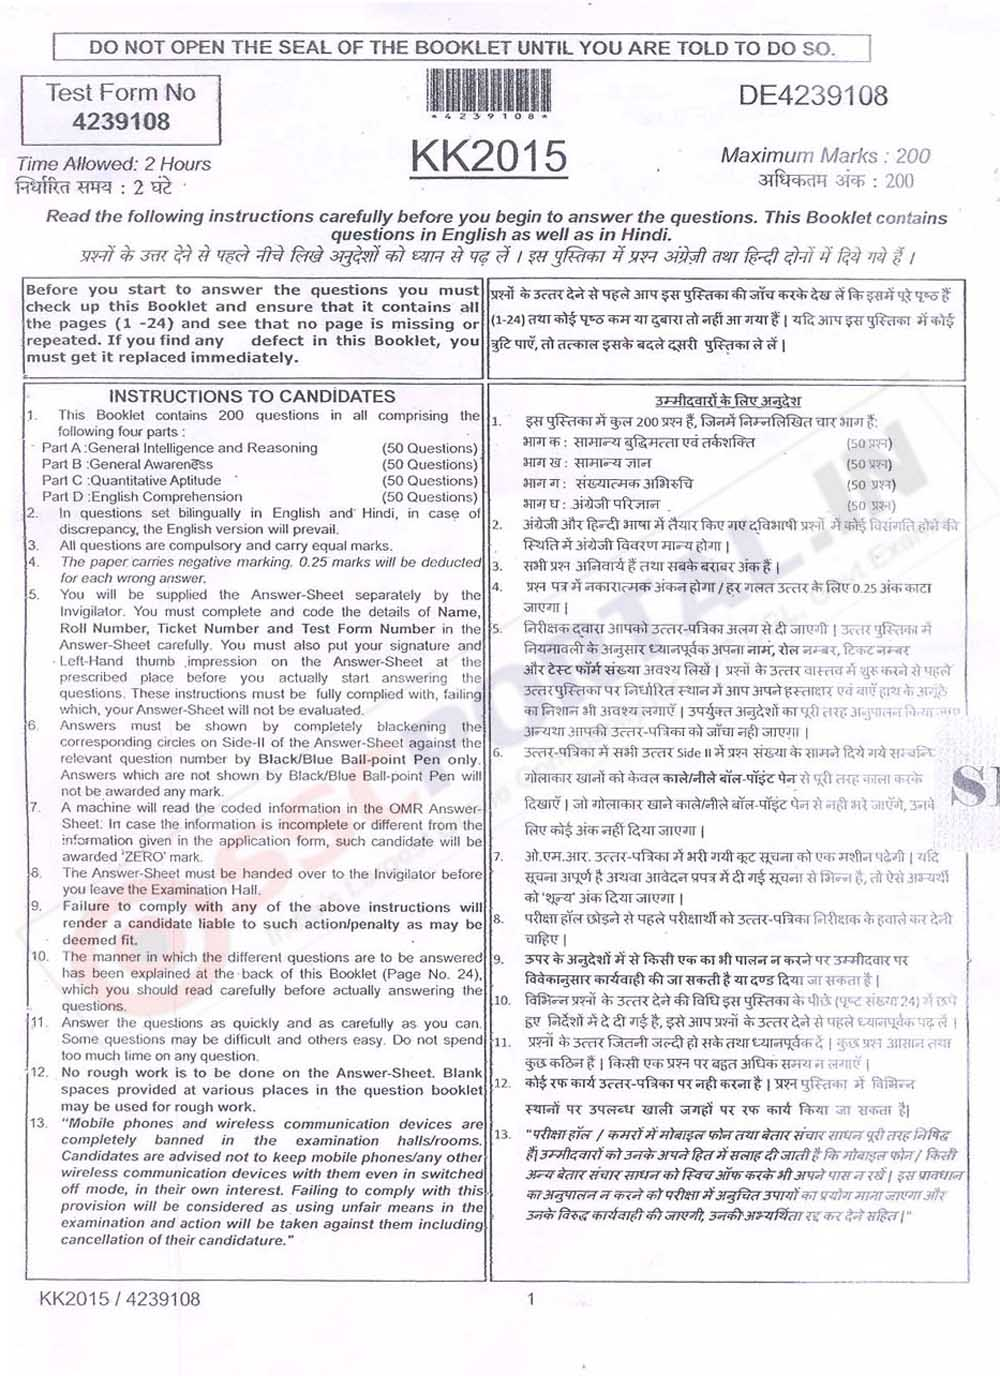 Download) SSC CGL (Tier - 1) Exam Paper - 2015 (held on 9-8-2015 ...